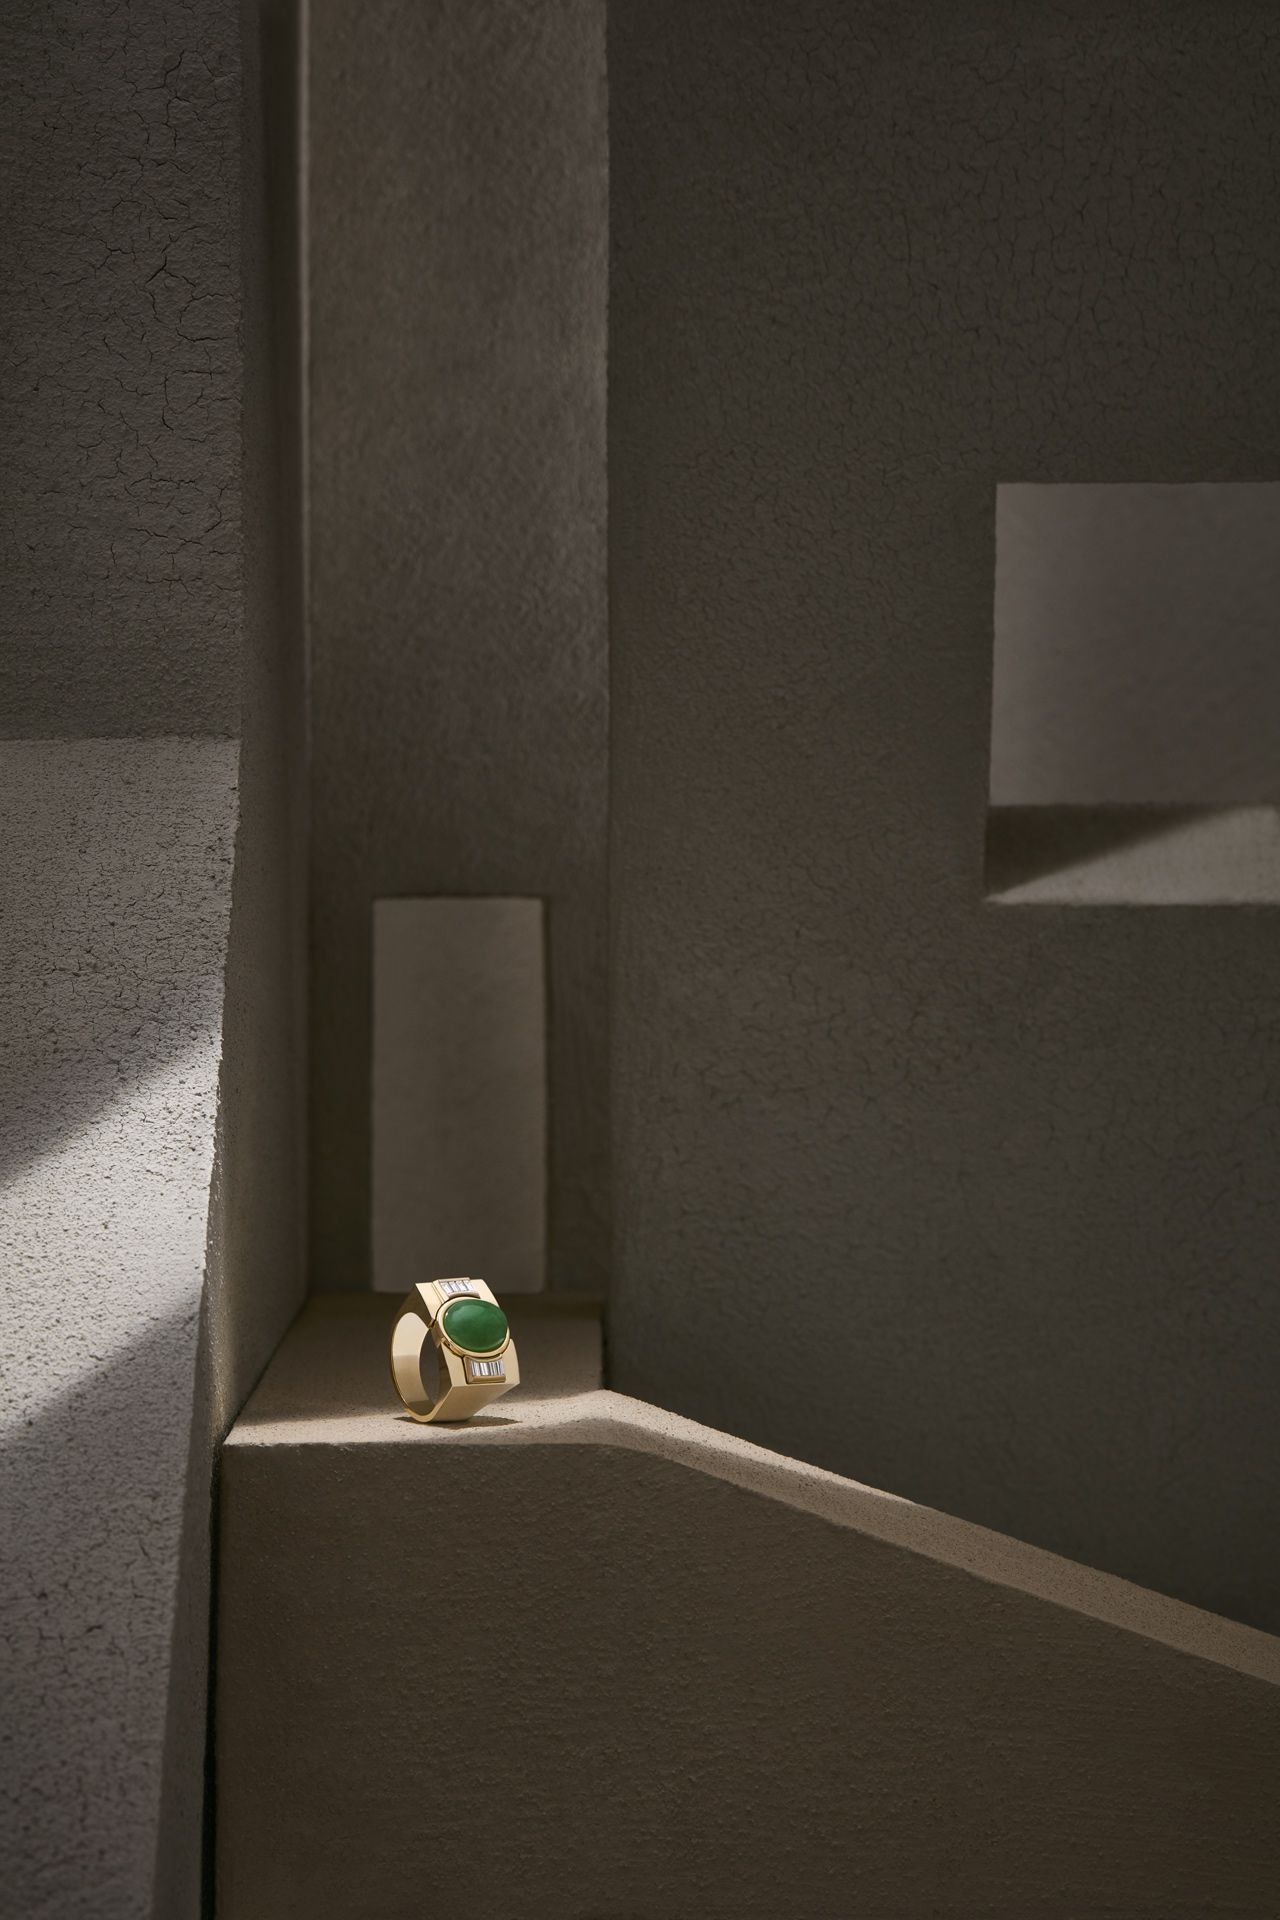 gold ring with green stone and white diamond placed in ray of light in cave or vault-like setting by Mathieu Levesque for Morrier jewelry